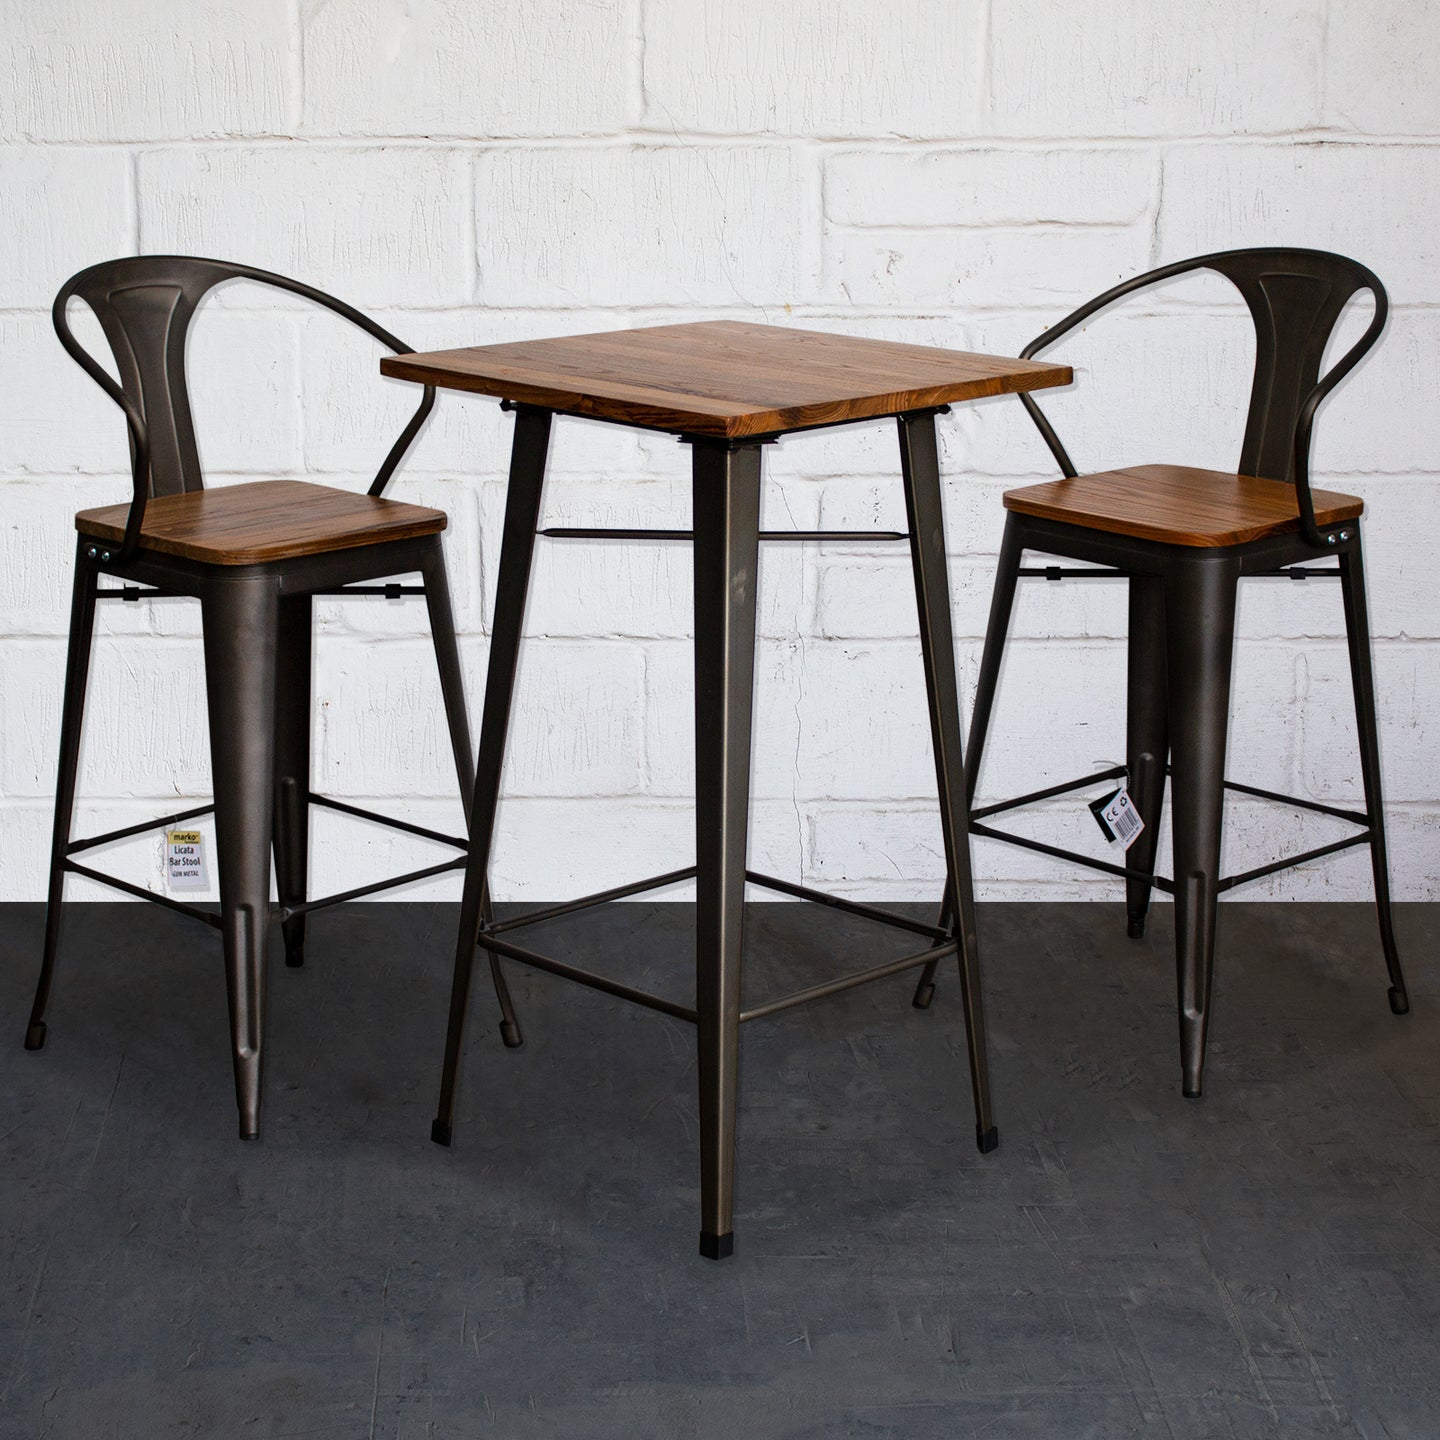 3PC Lodi Table & Licata Bar Stool Set - Gun Metal Grey